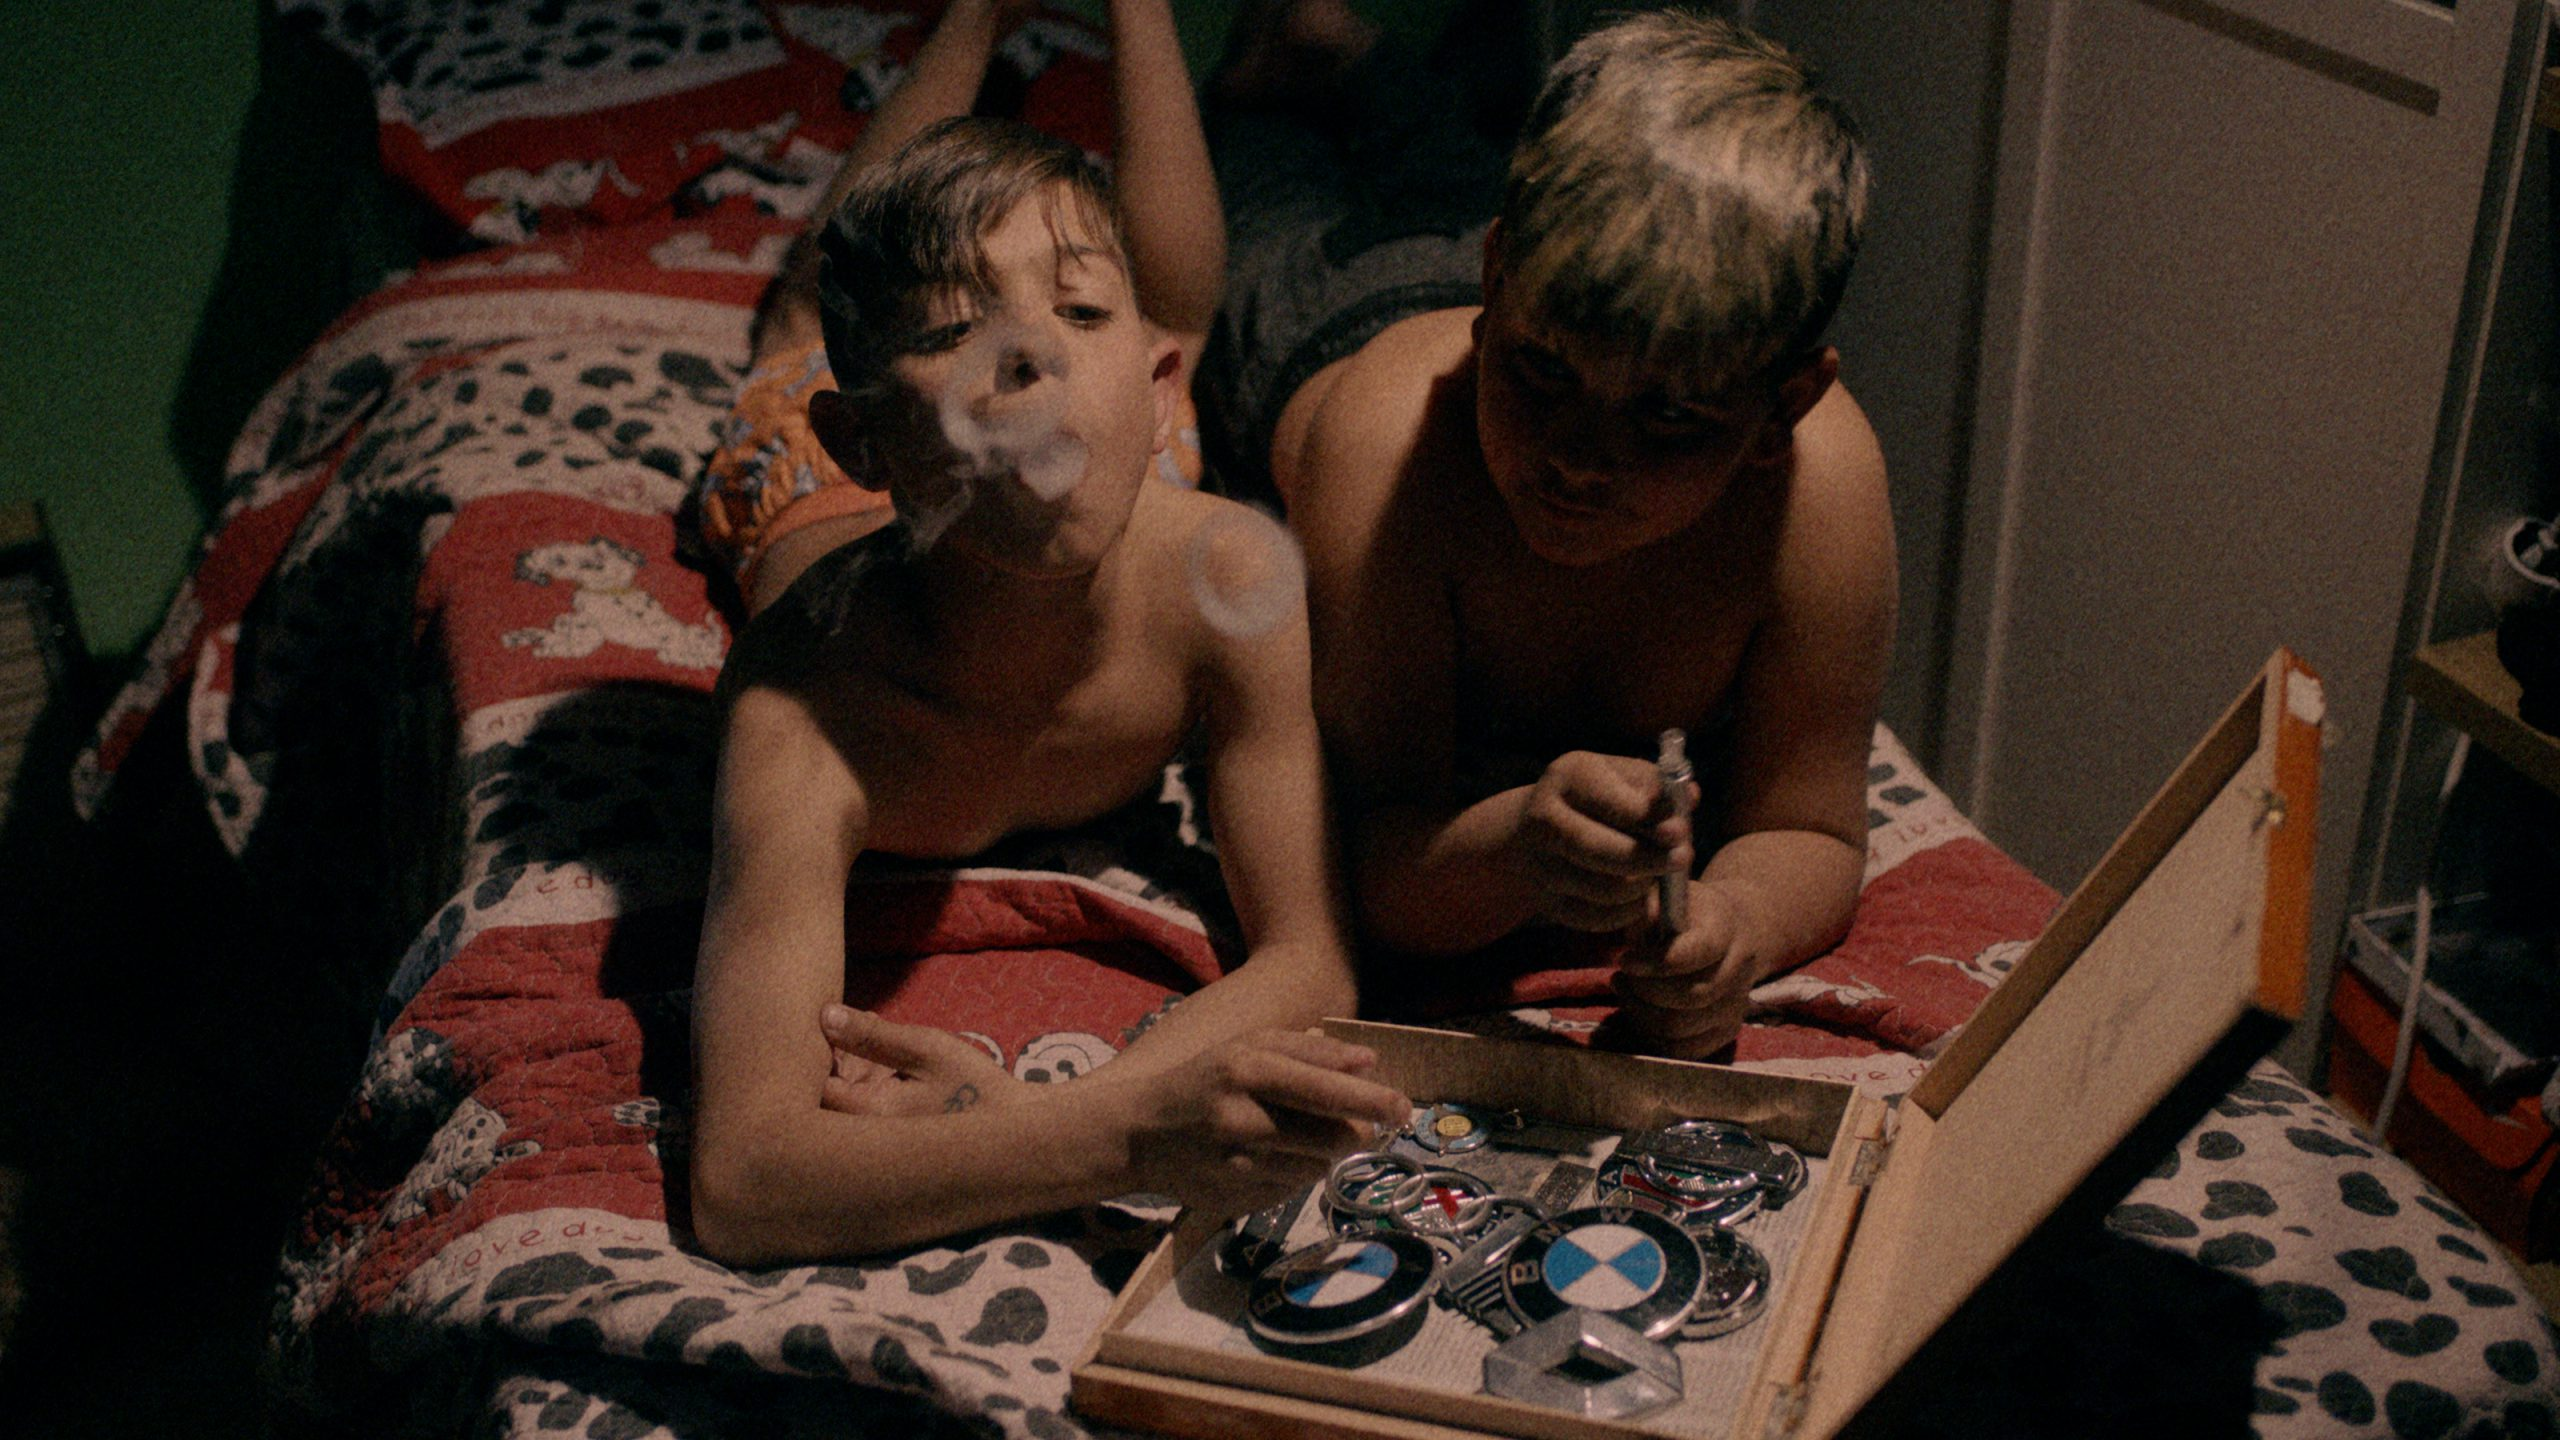 LAST DAYS OF SPRING / LA ÚLTIMA PRIMAVERA NOW IN THE DUTCH CINEMAS! (from October 29 release by Cherry Pickers)